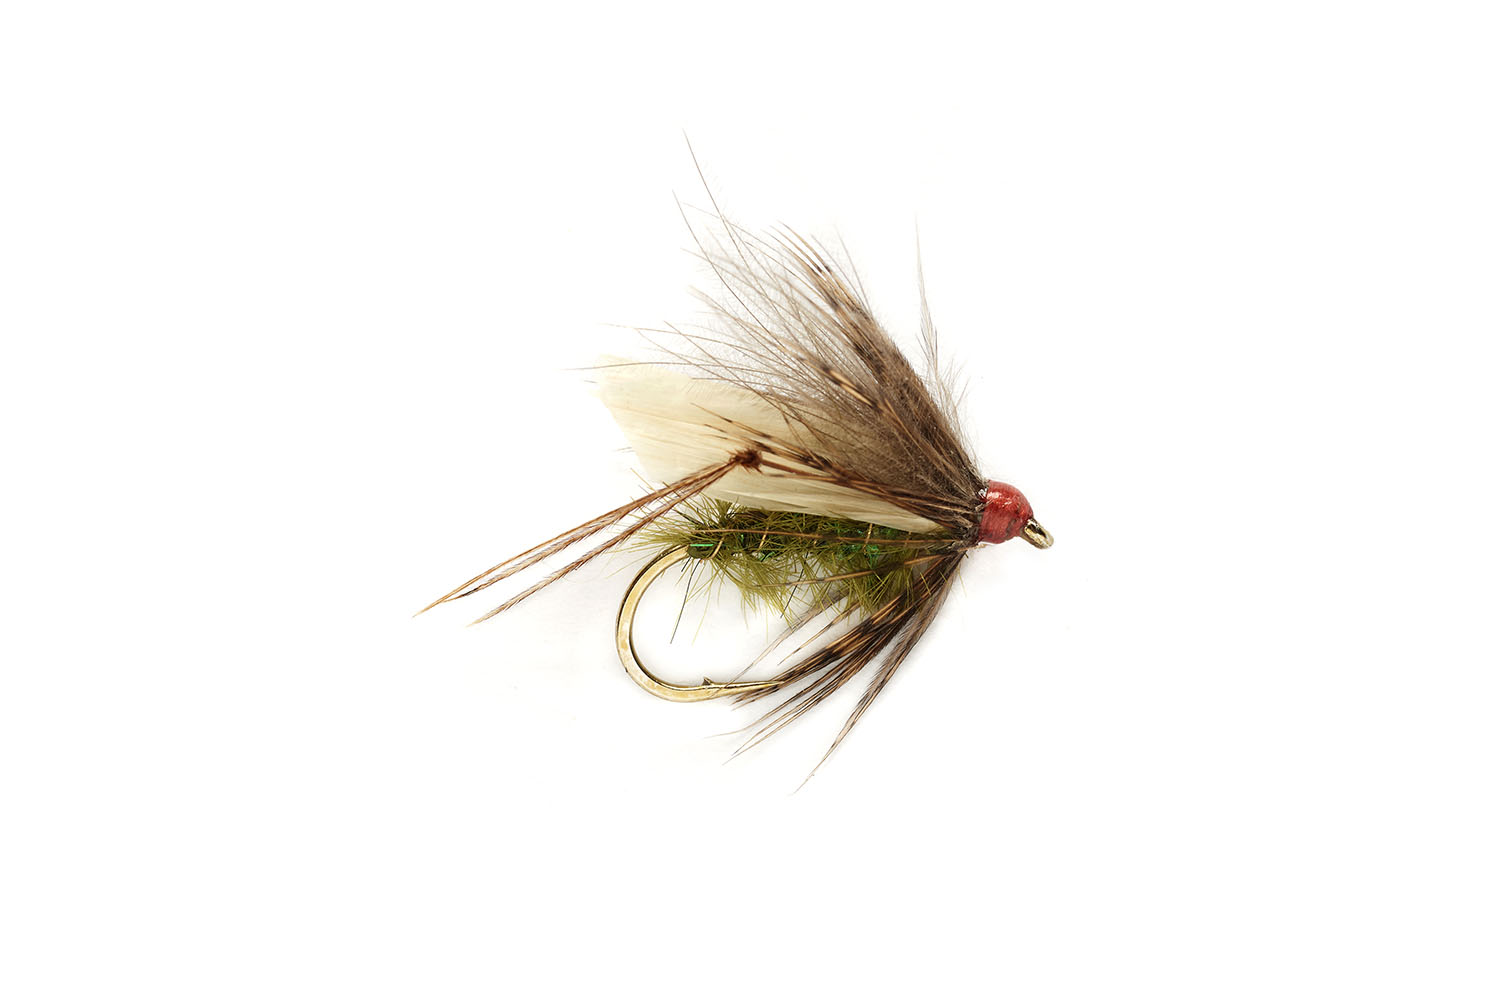 DW Olive Caddis Emerger